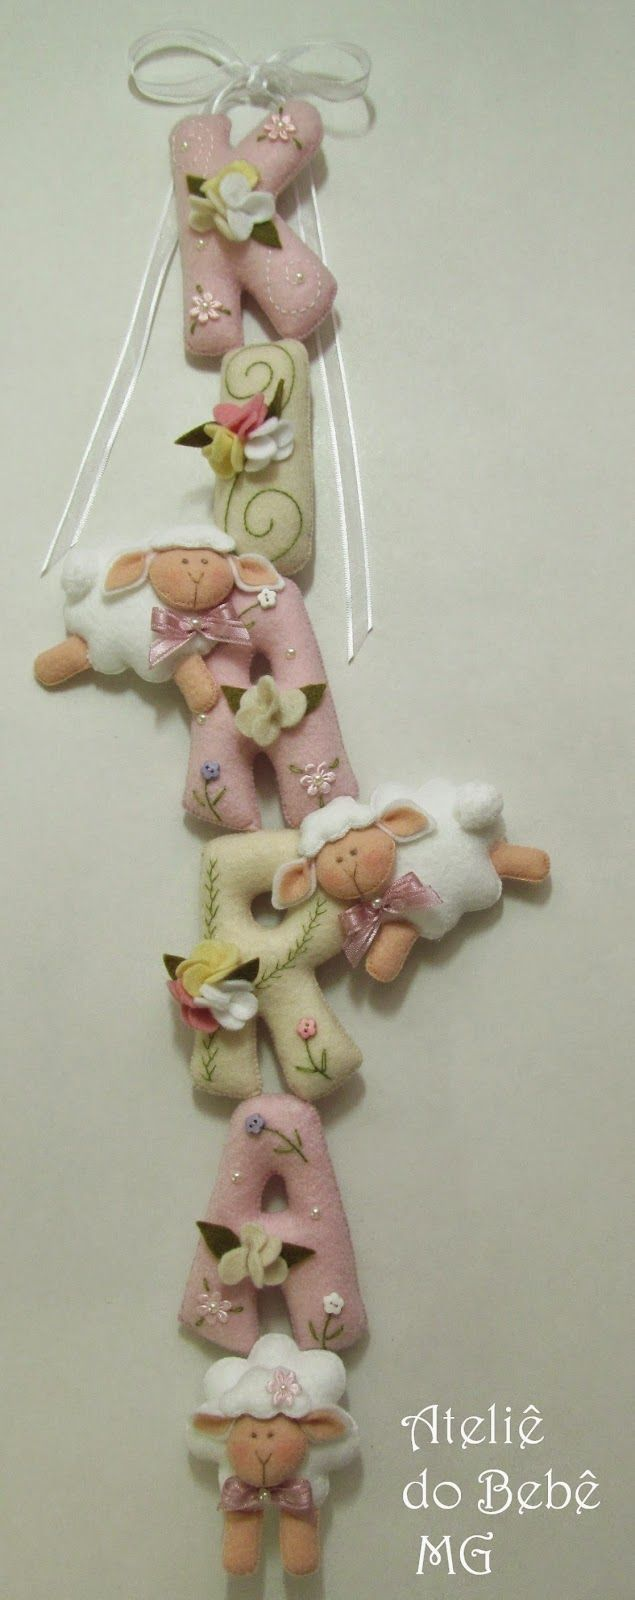 Studio Baby MG: Baby Name on Felt (Kiara)